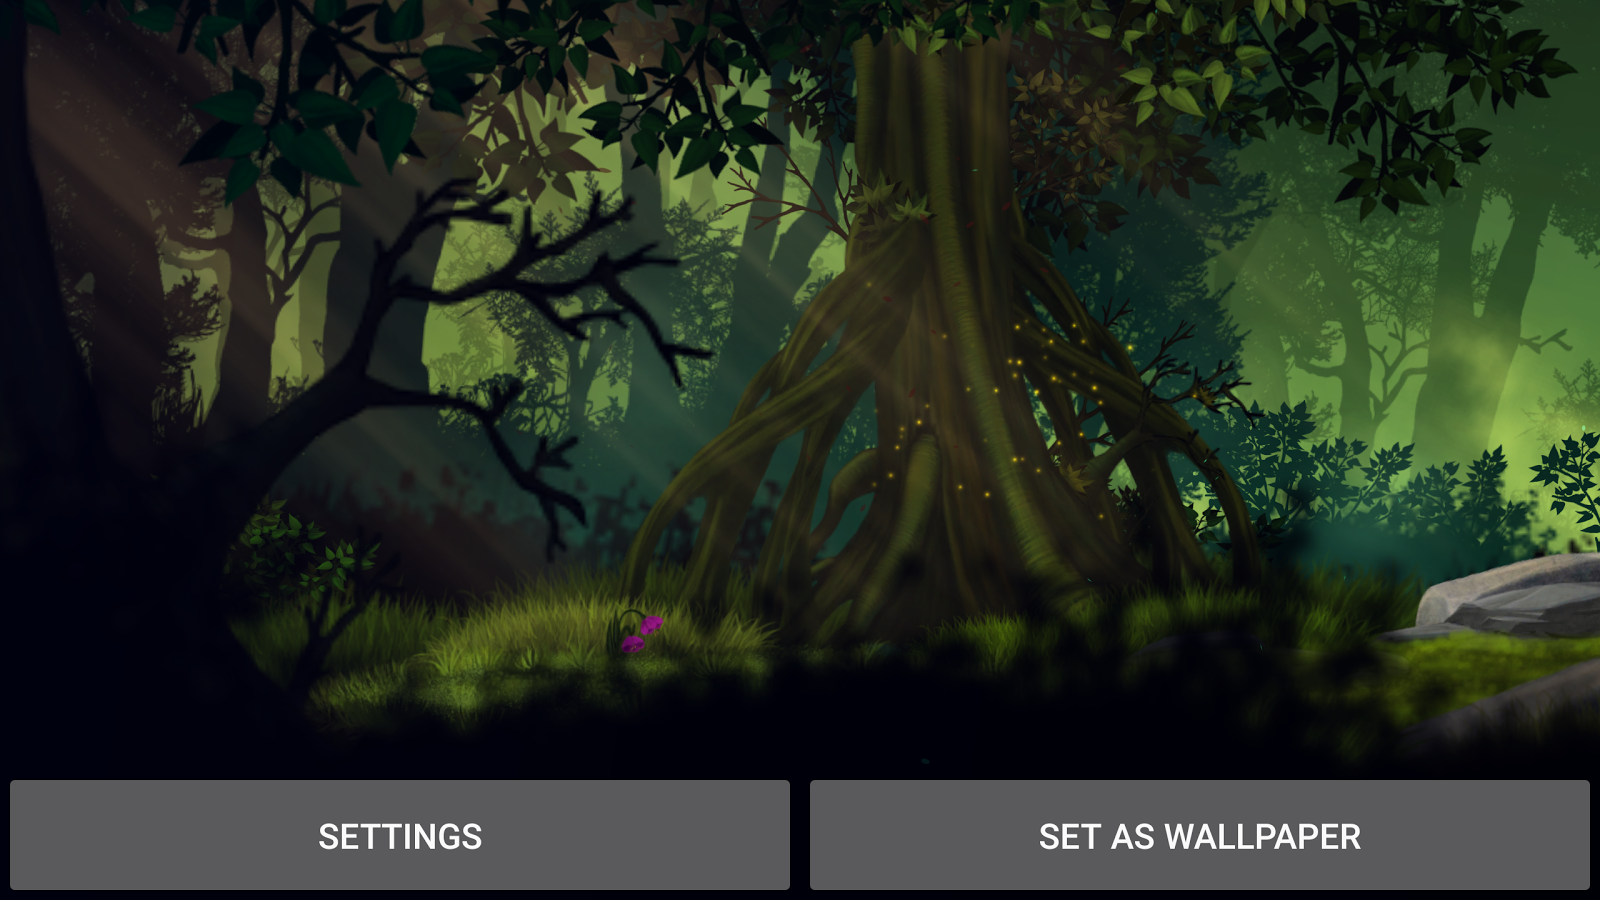 Firefly Forest Live Wallpaper Screenshot 9